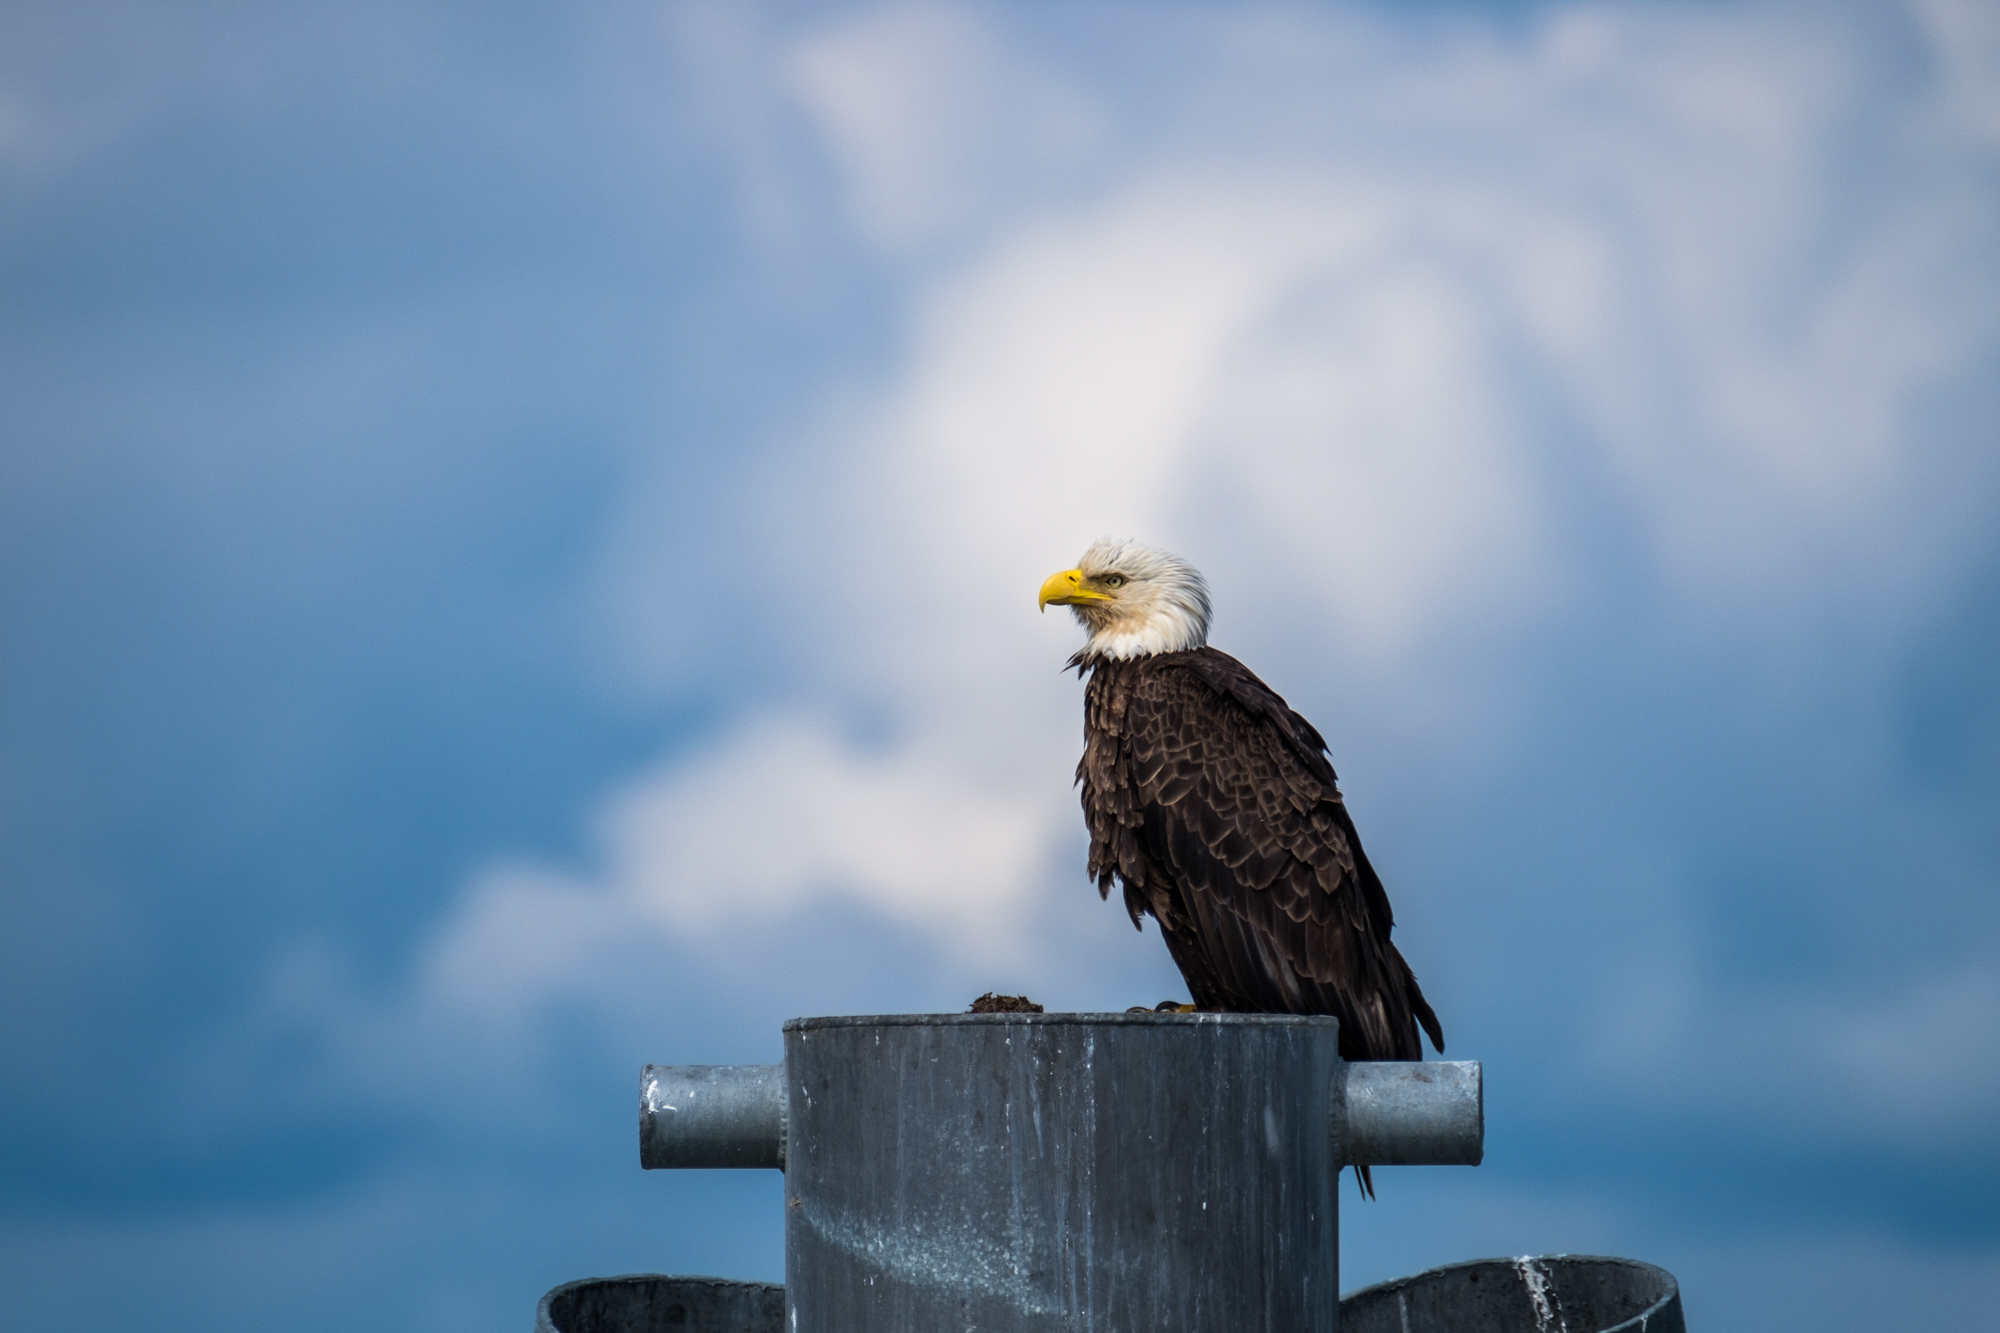 Eagles are everywhere in Glacier Bay. This one was kind enough to hold a pose for quite some time.